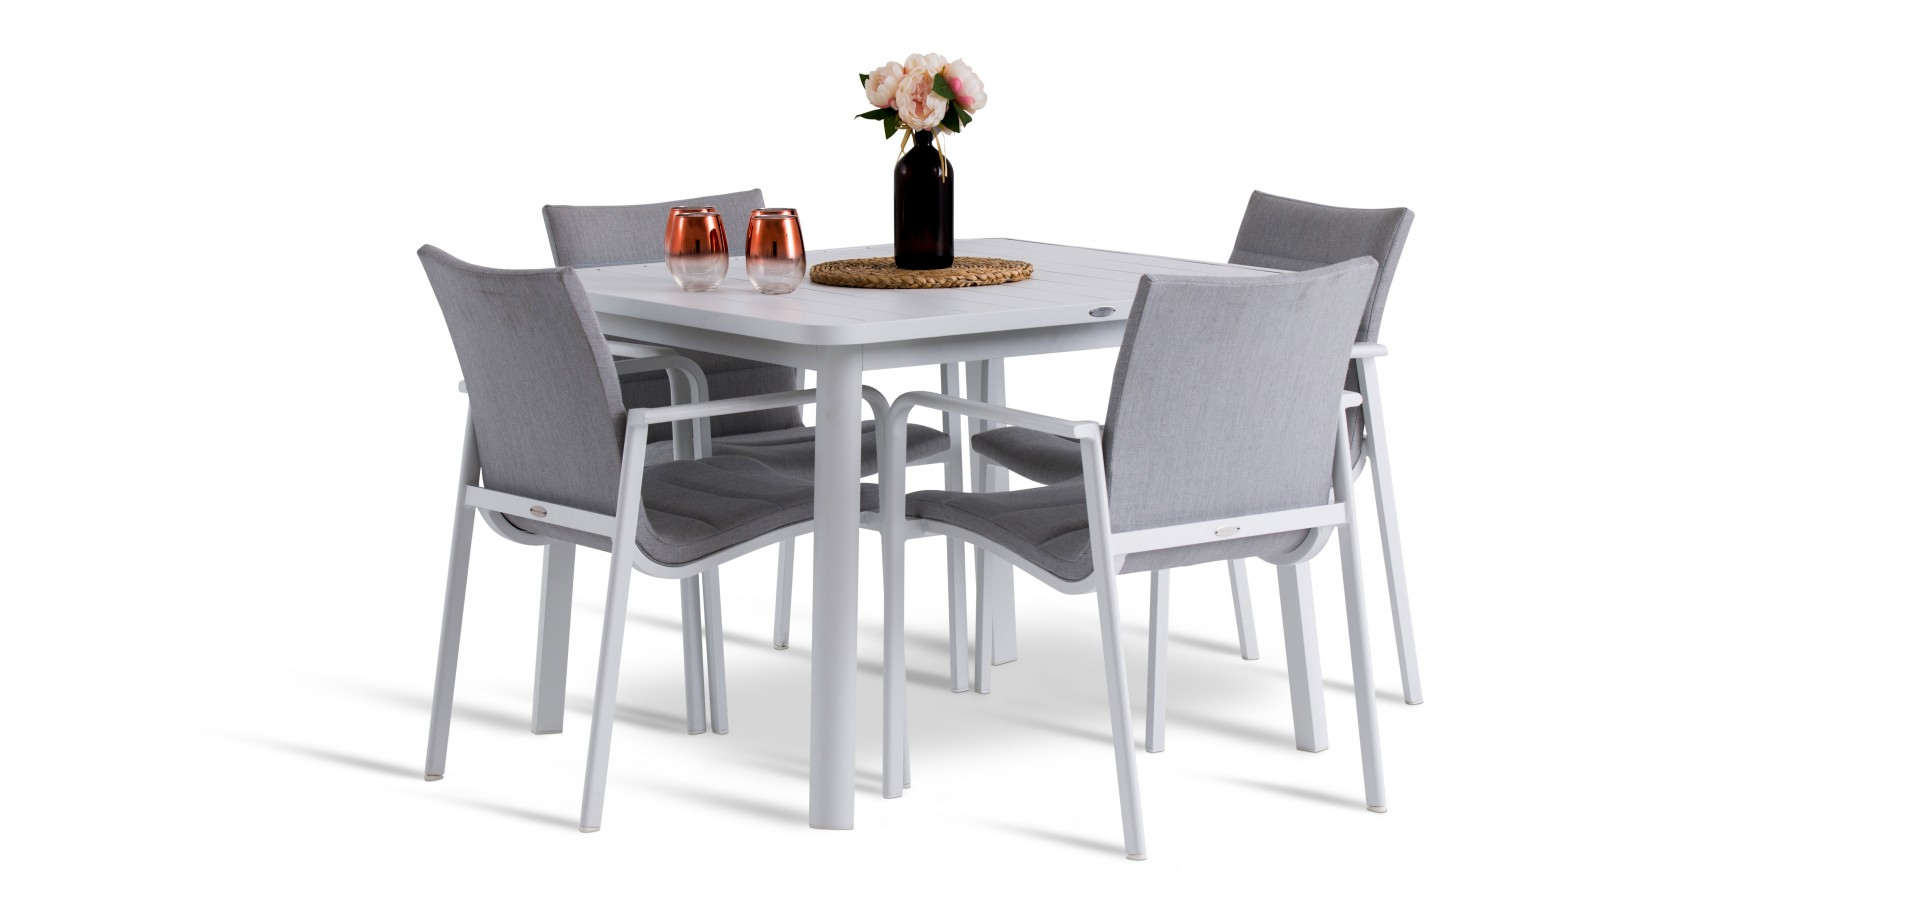 Santa Monica Outdoor Chairs and White Table